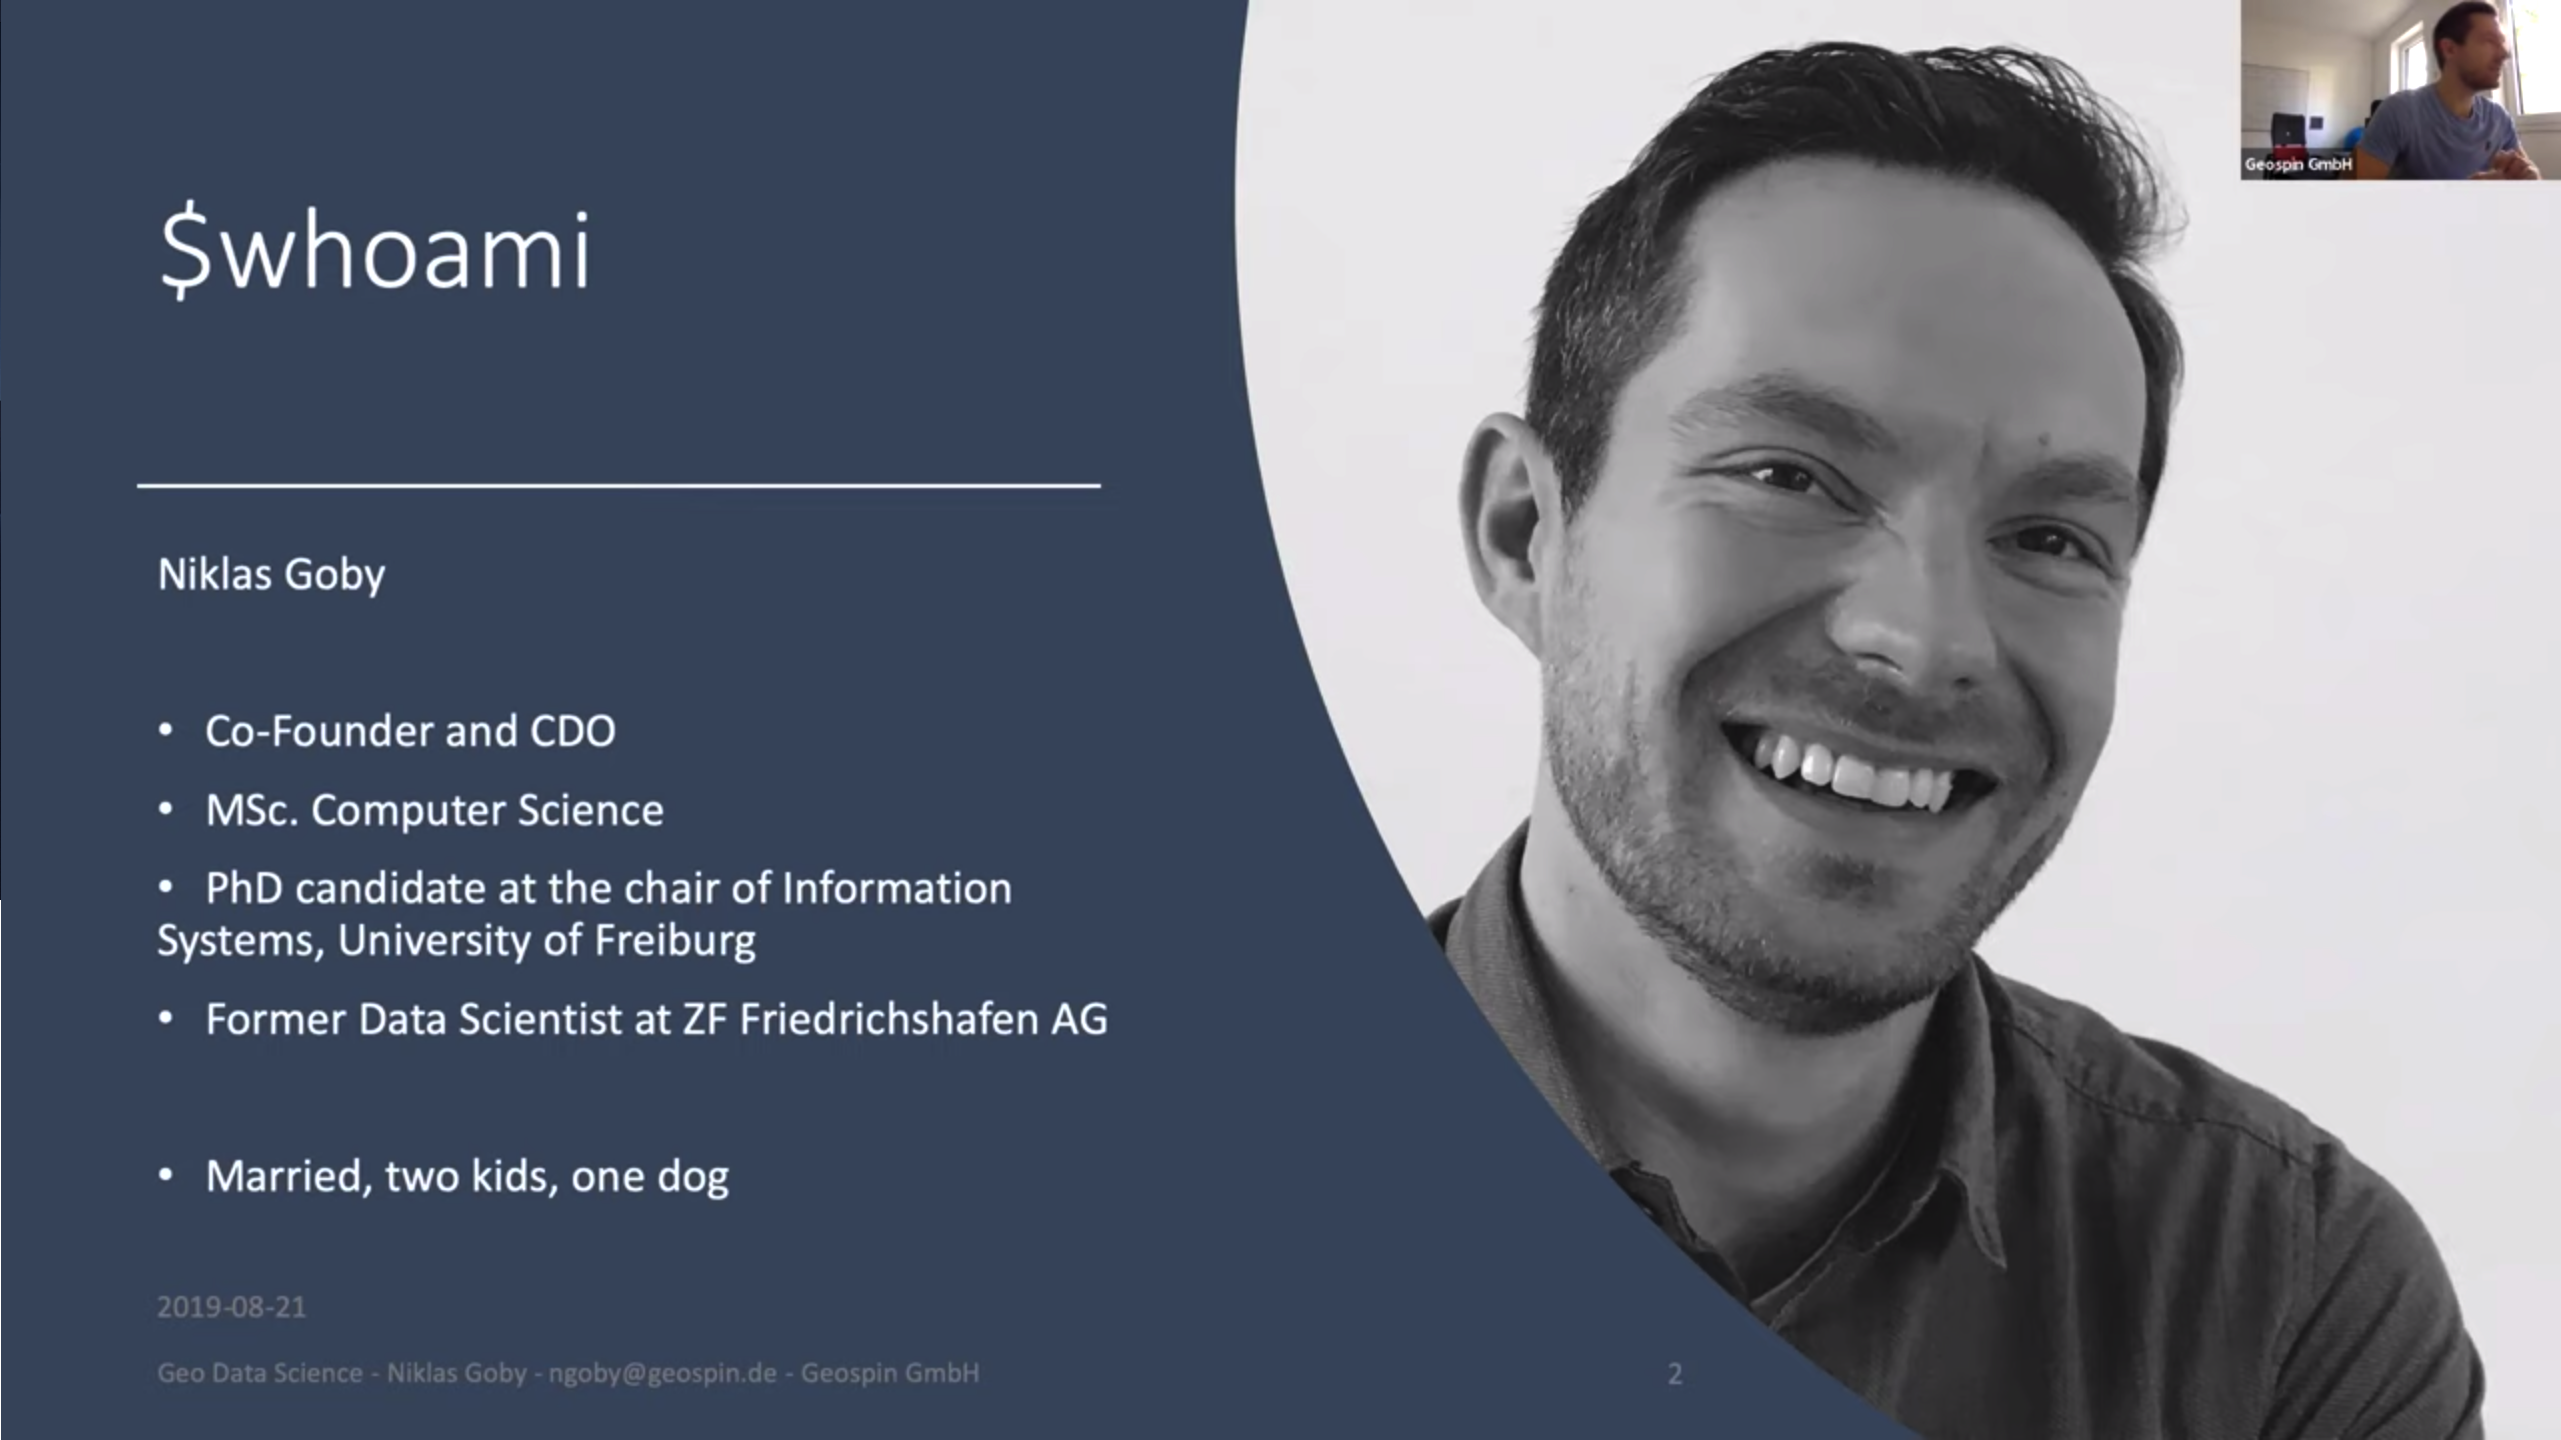 First Geospin Webinar With Niklas Goby – August 2019 (German Only)